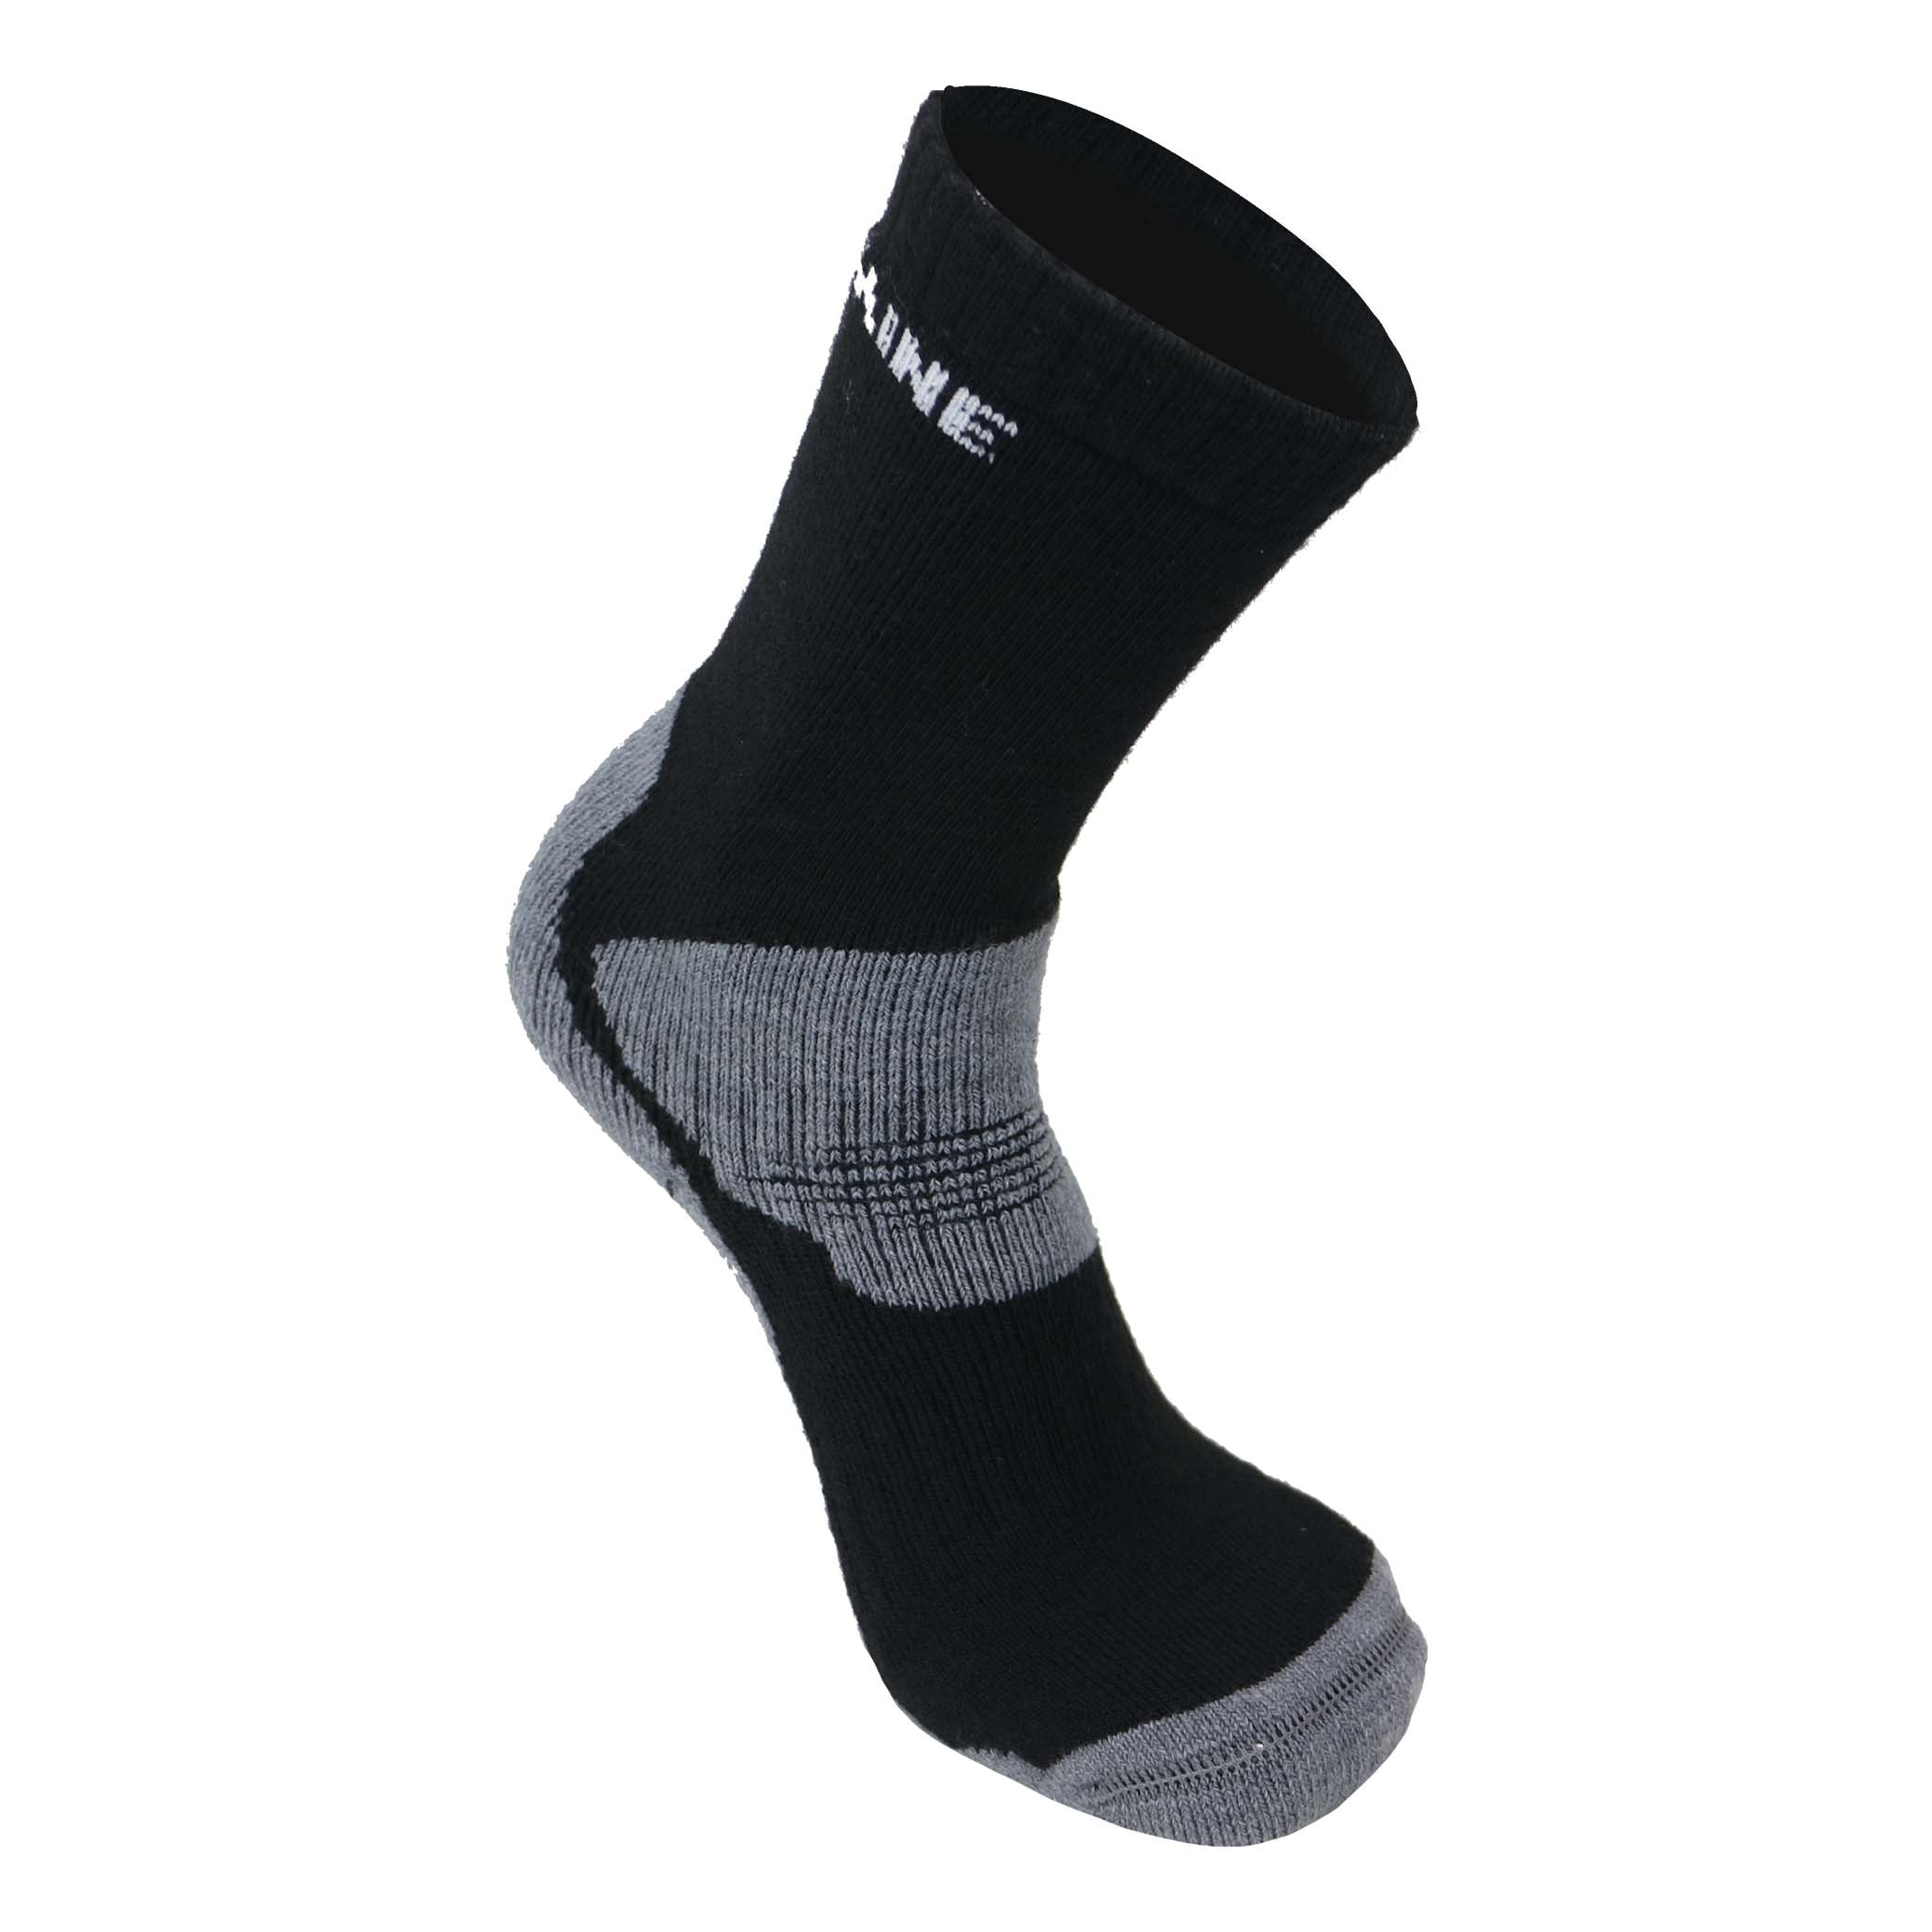 Tread Endurance Black/Grey With Merino